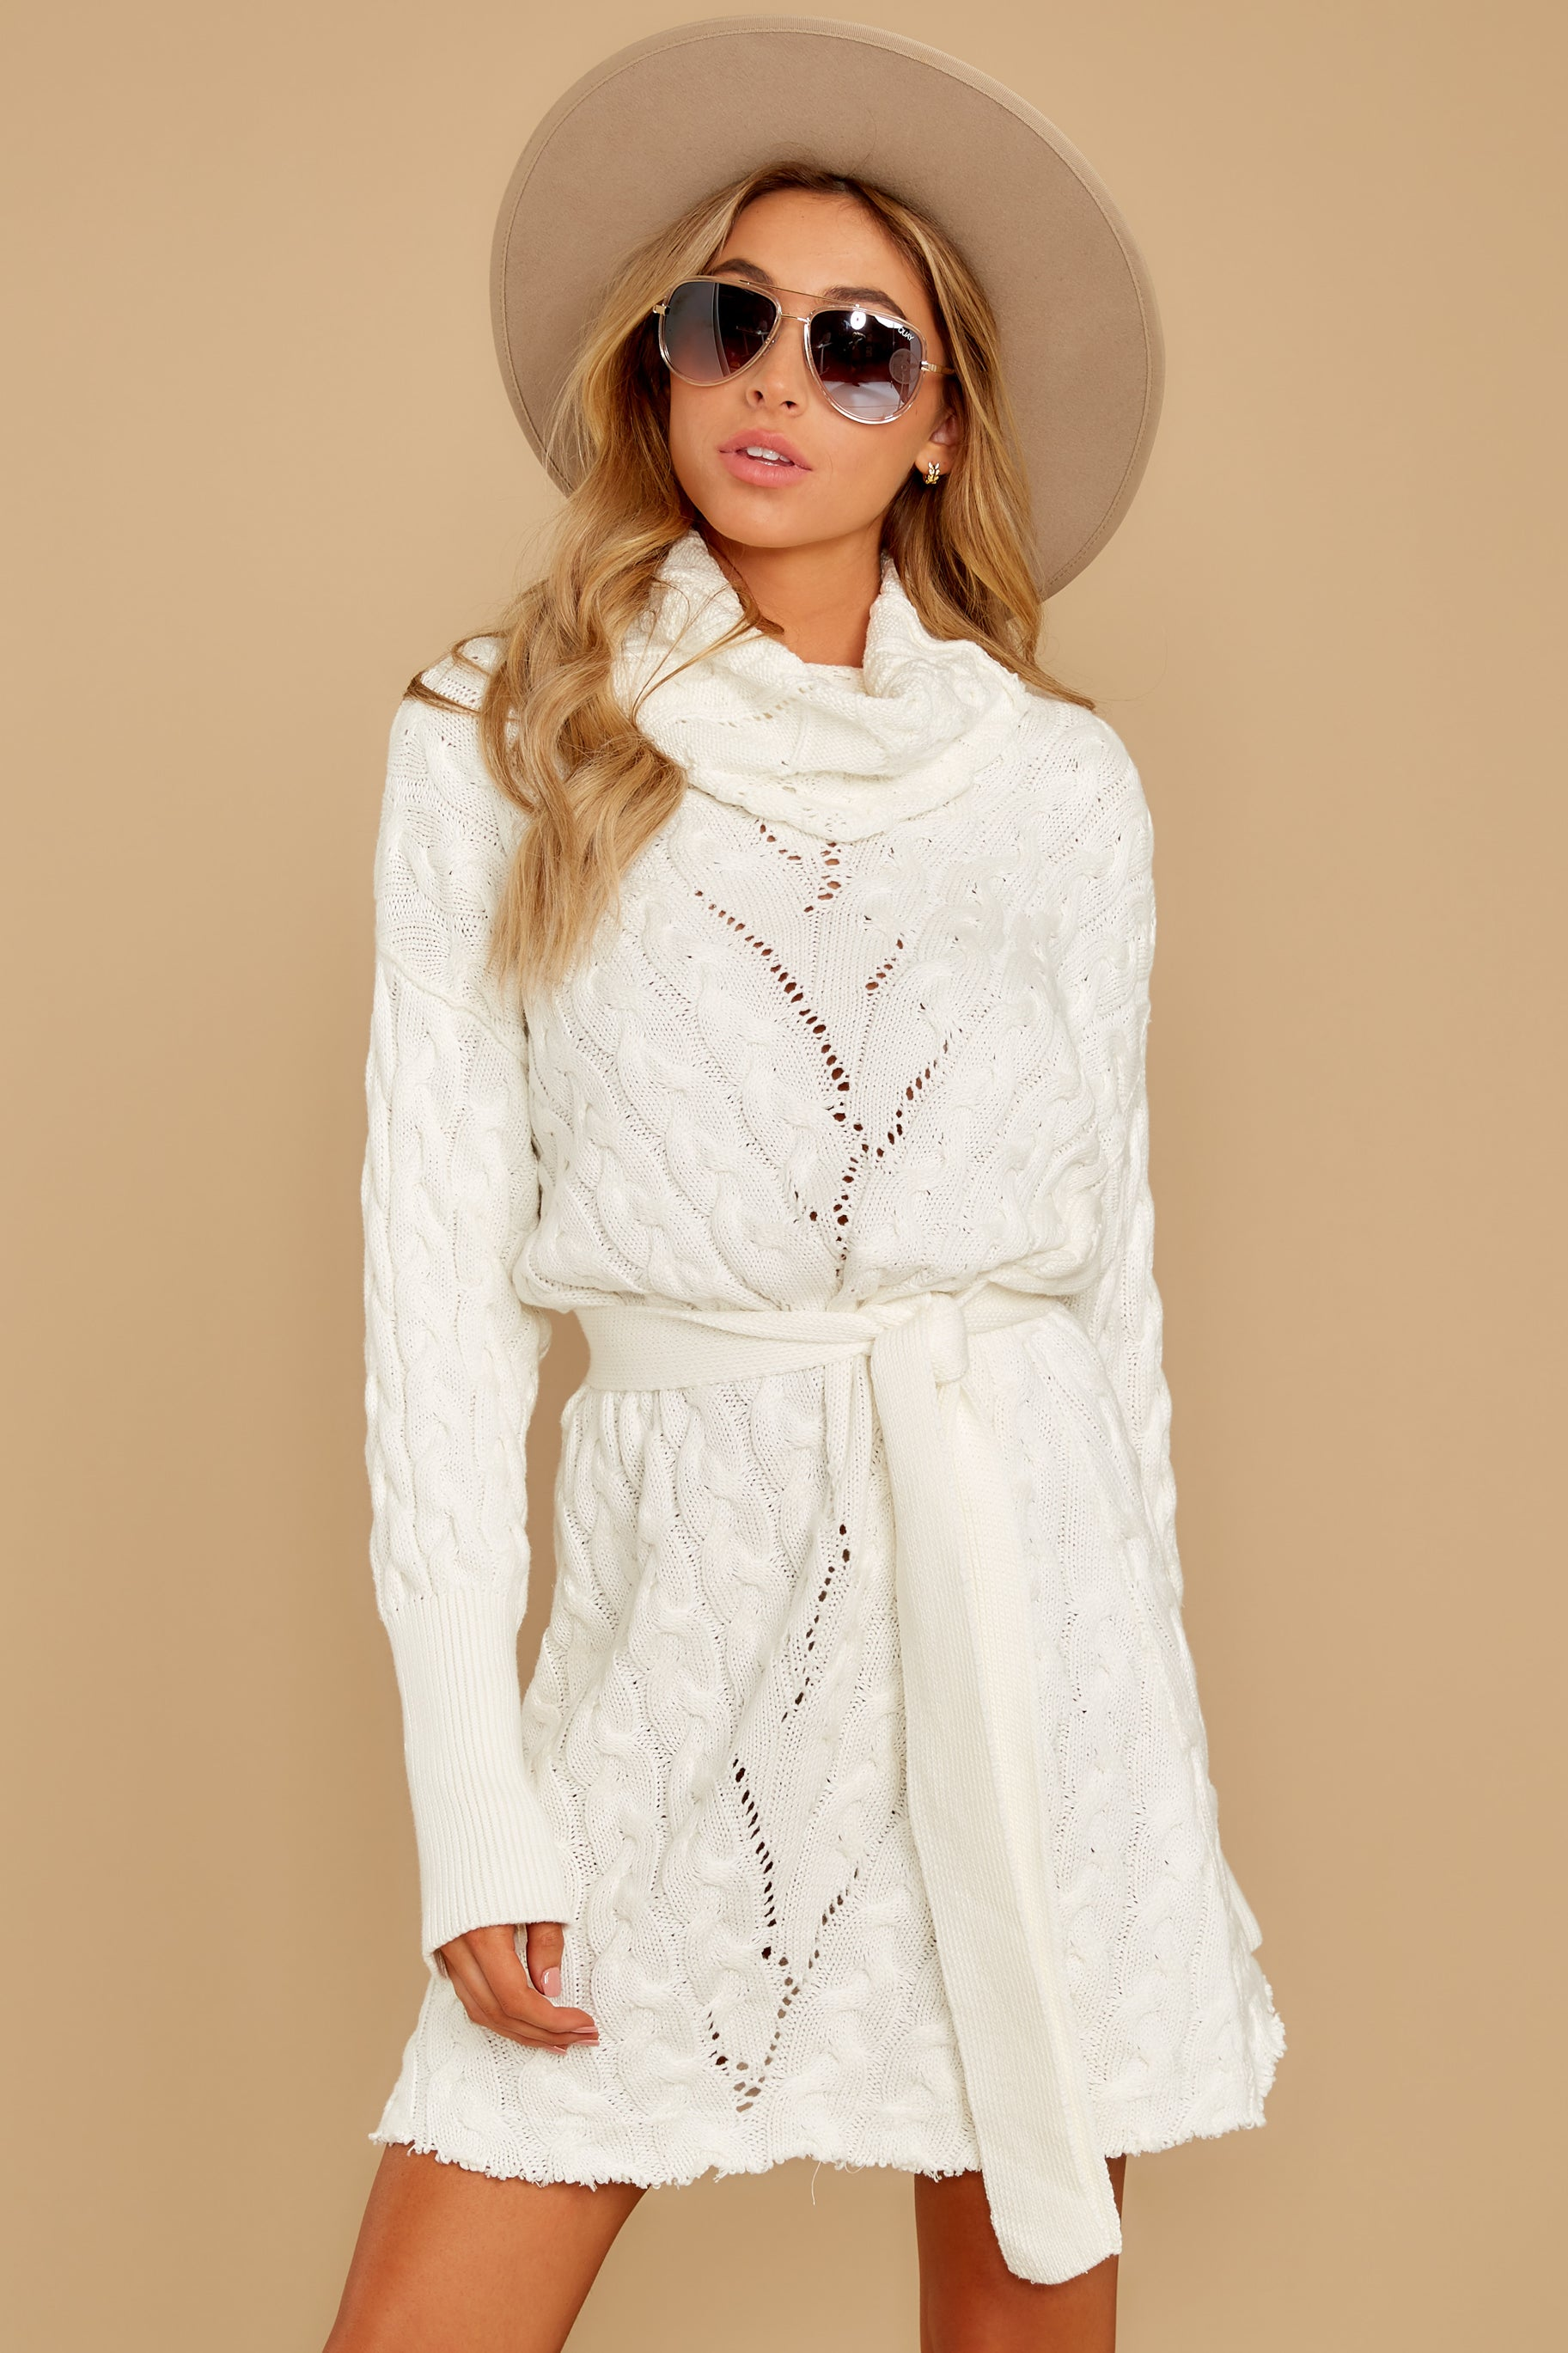 Ready Willing And Cable Knit Ivory Sweater Dress